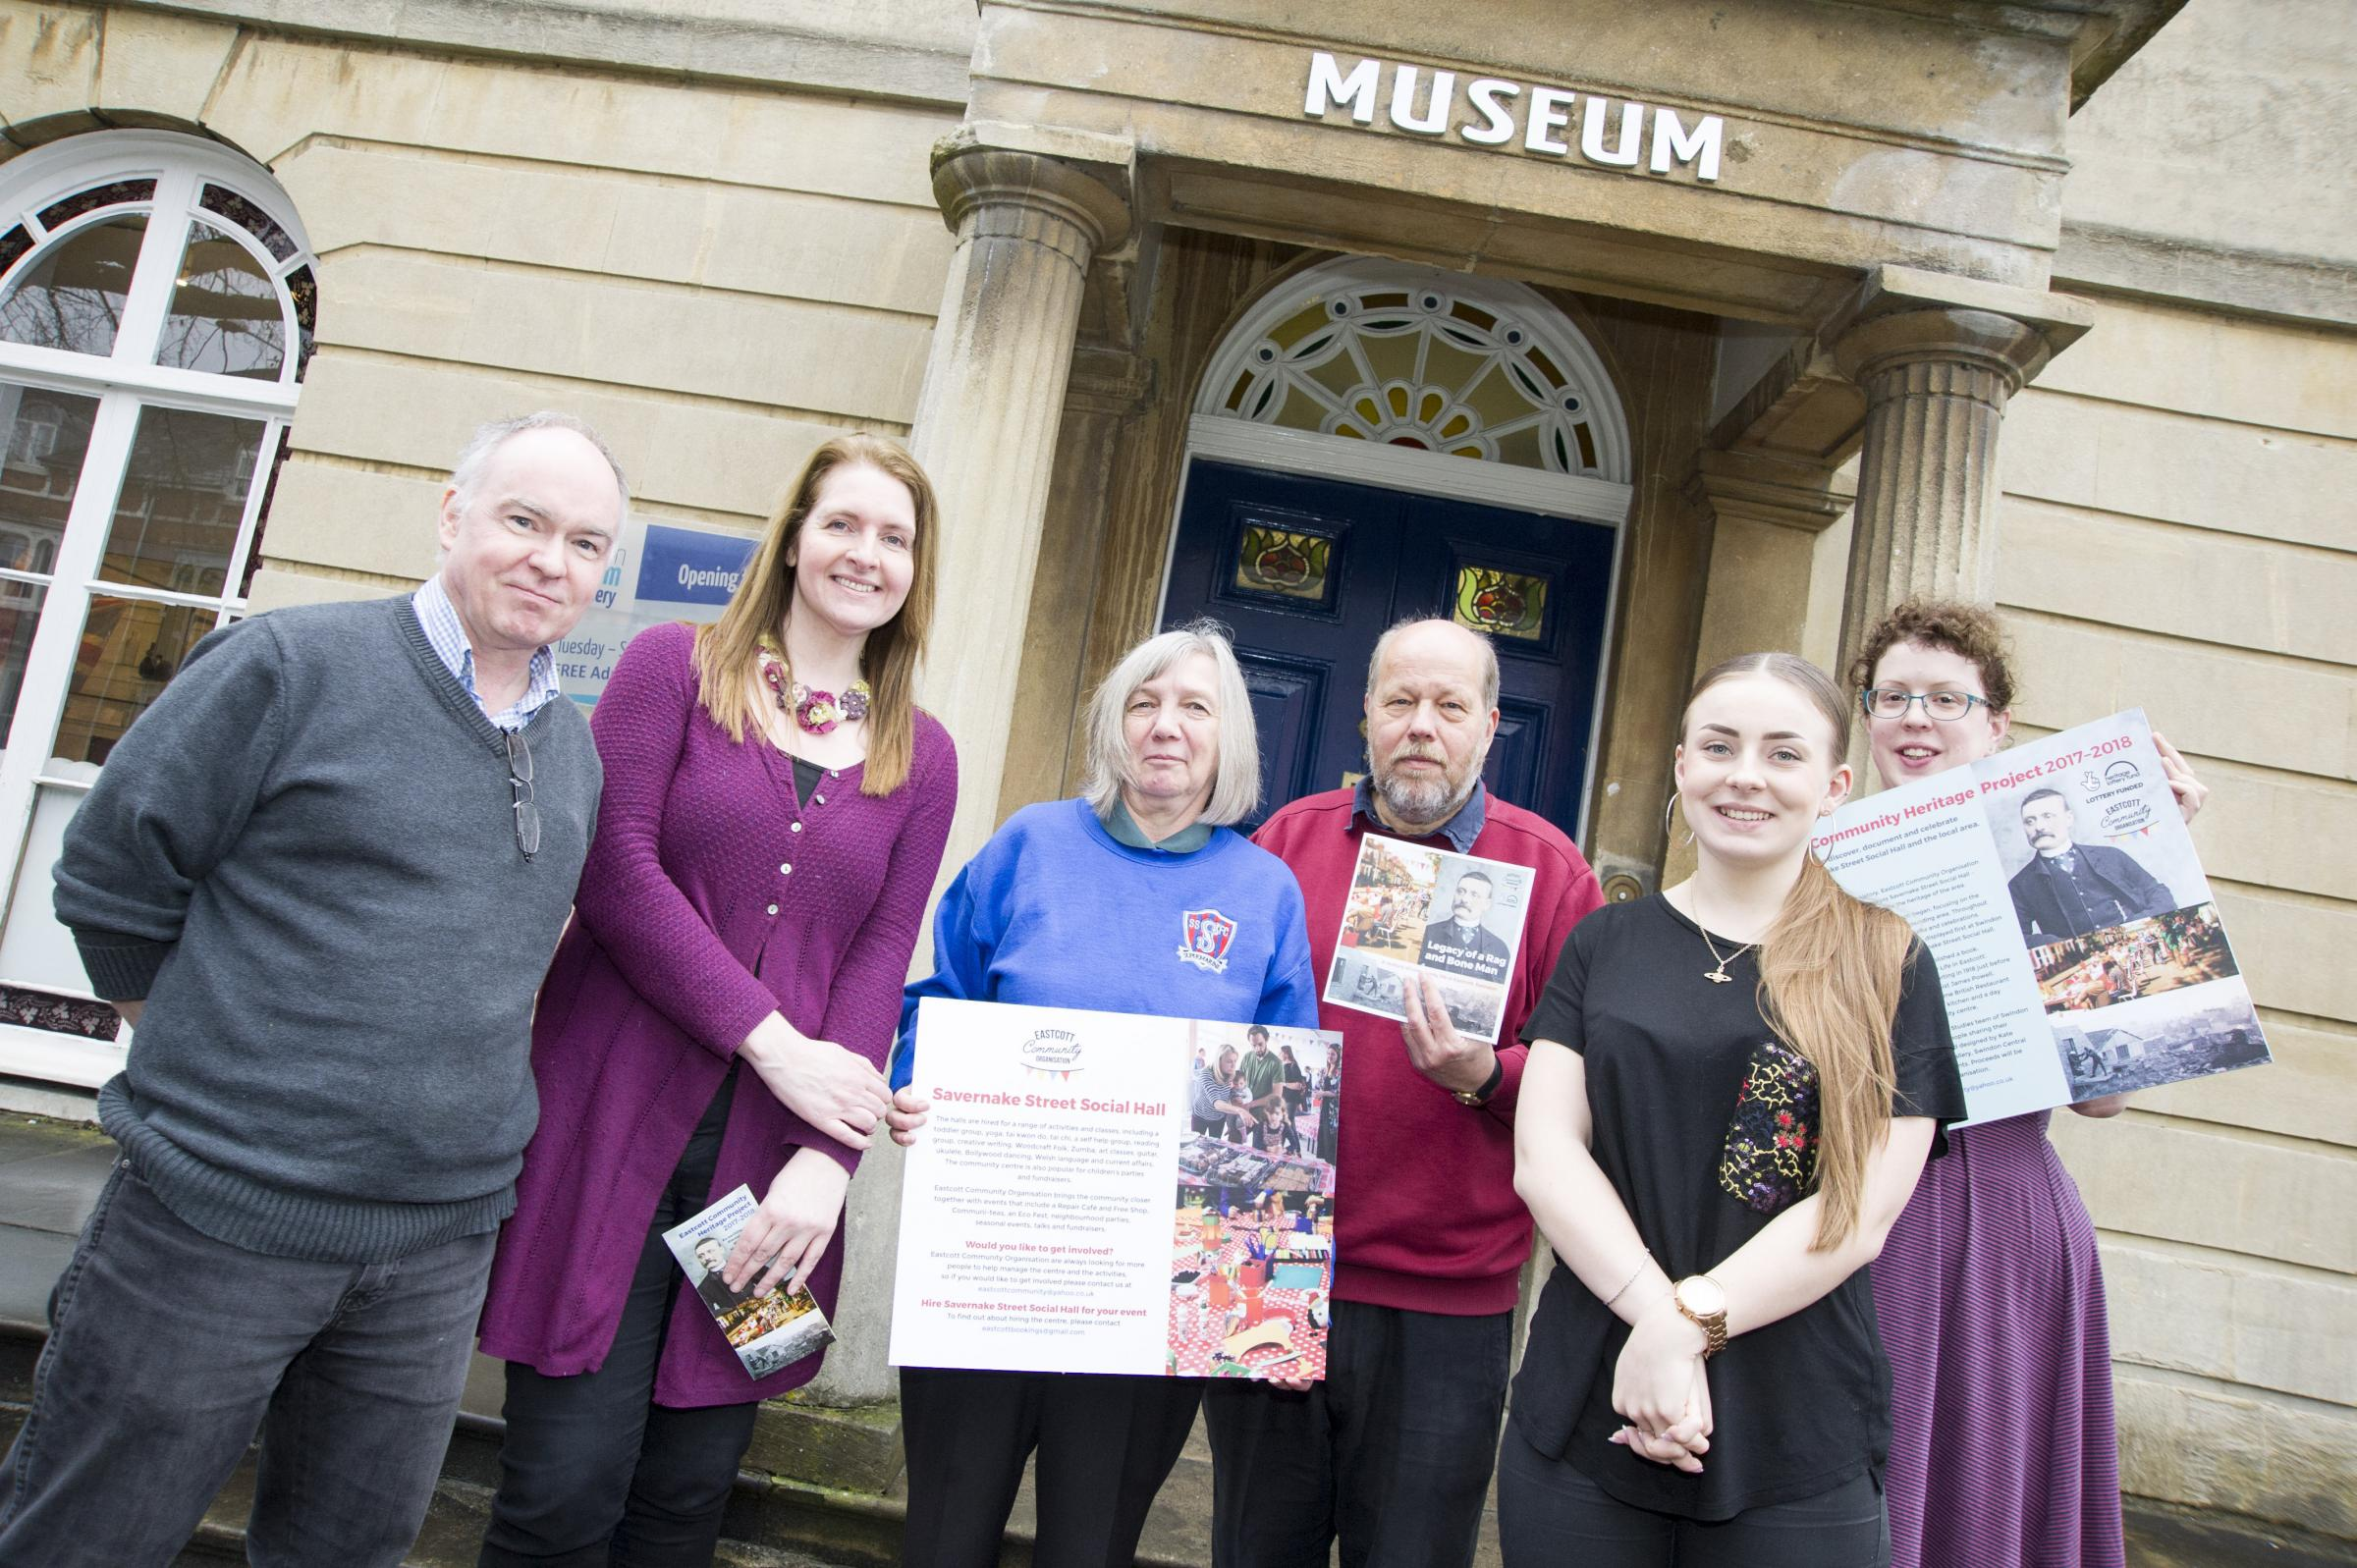 Eastcott Community Organisation wants pre-launch photos of their members and their art exhibition that celebrates the history of Eastcott at the Swindon Museum and Art Gallery..left 2 right .Pic - Rob Tomkins, Caroline Davies-Khan, Carrie Hayward, Steve H